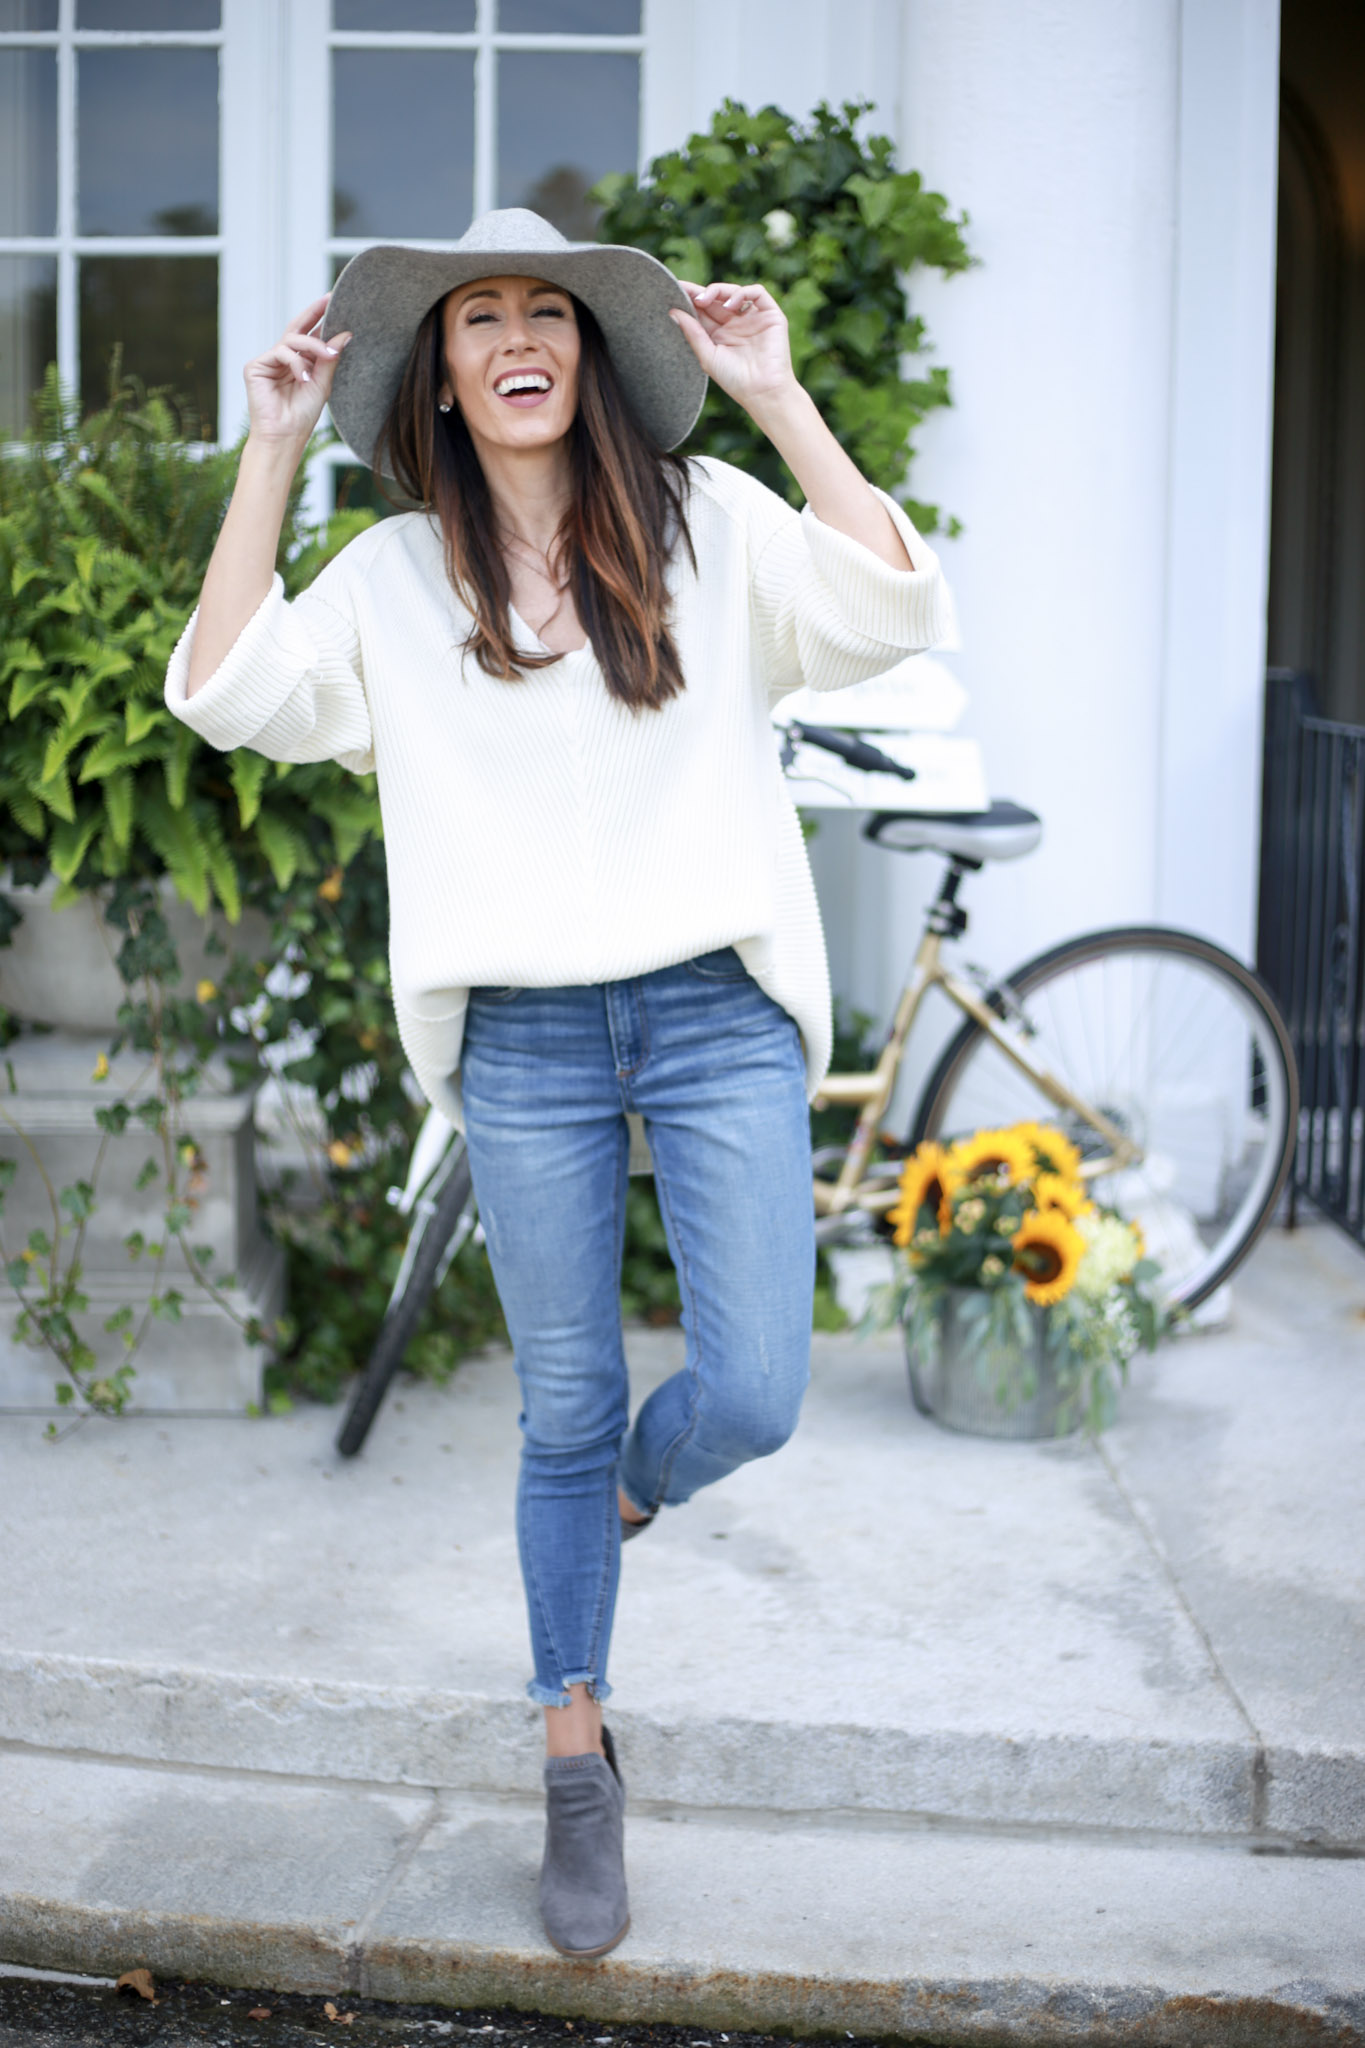 Capsule wardrobe series; The perfect fall sweaters - The Knit Sweater by Boston fashion blogger Living Life Pretty